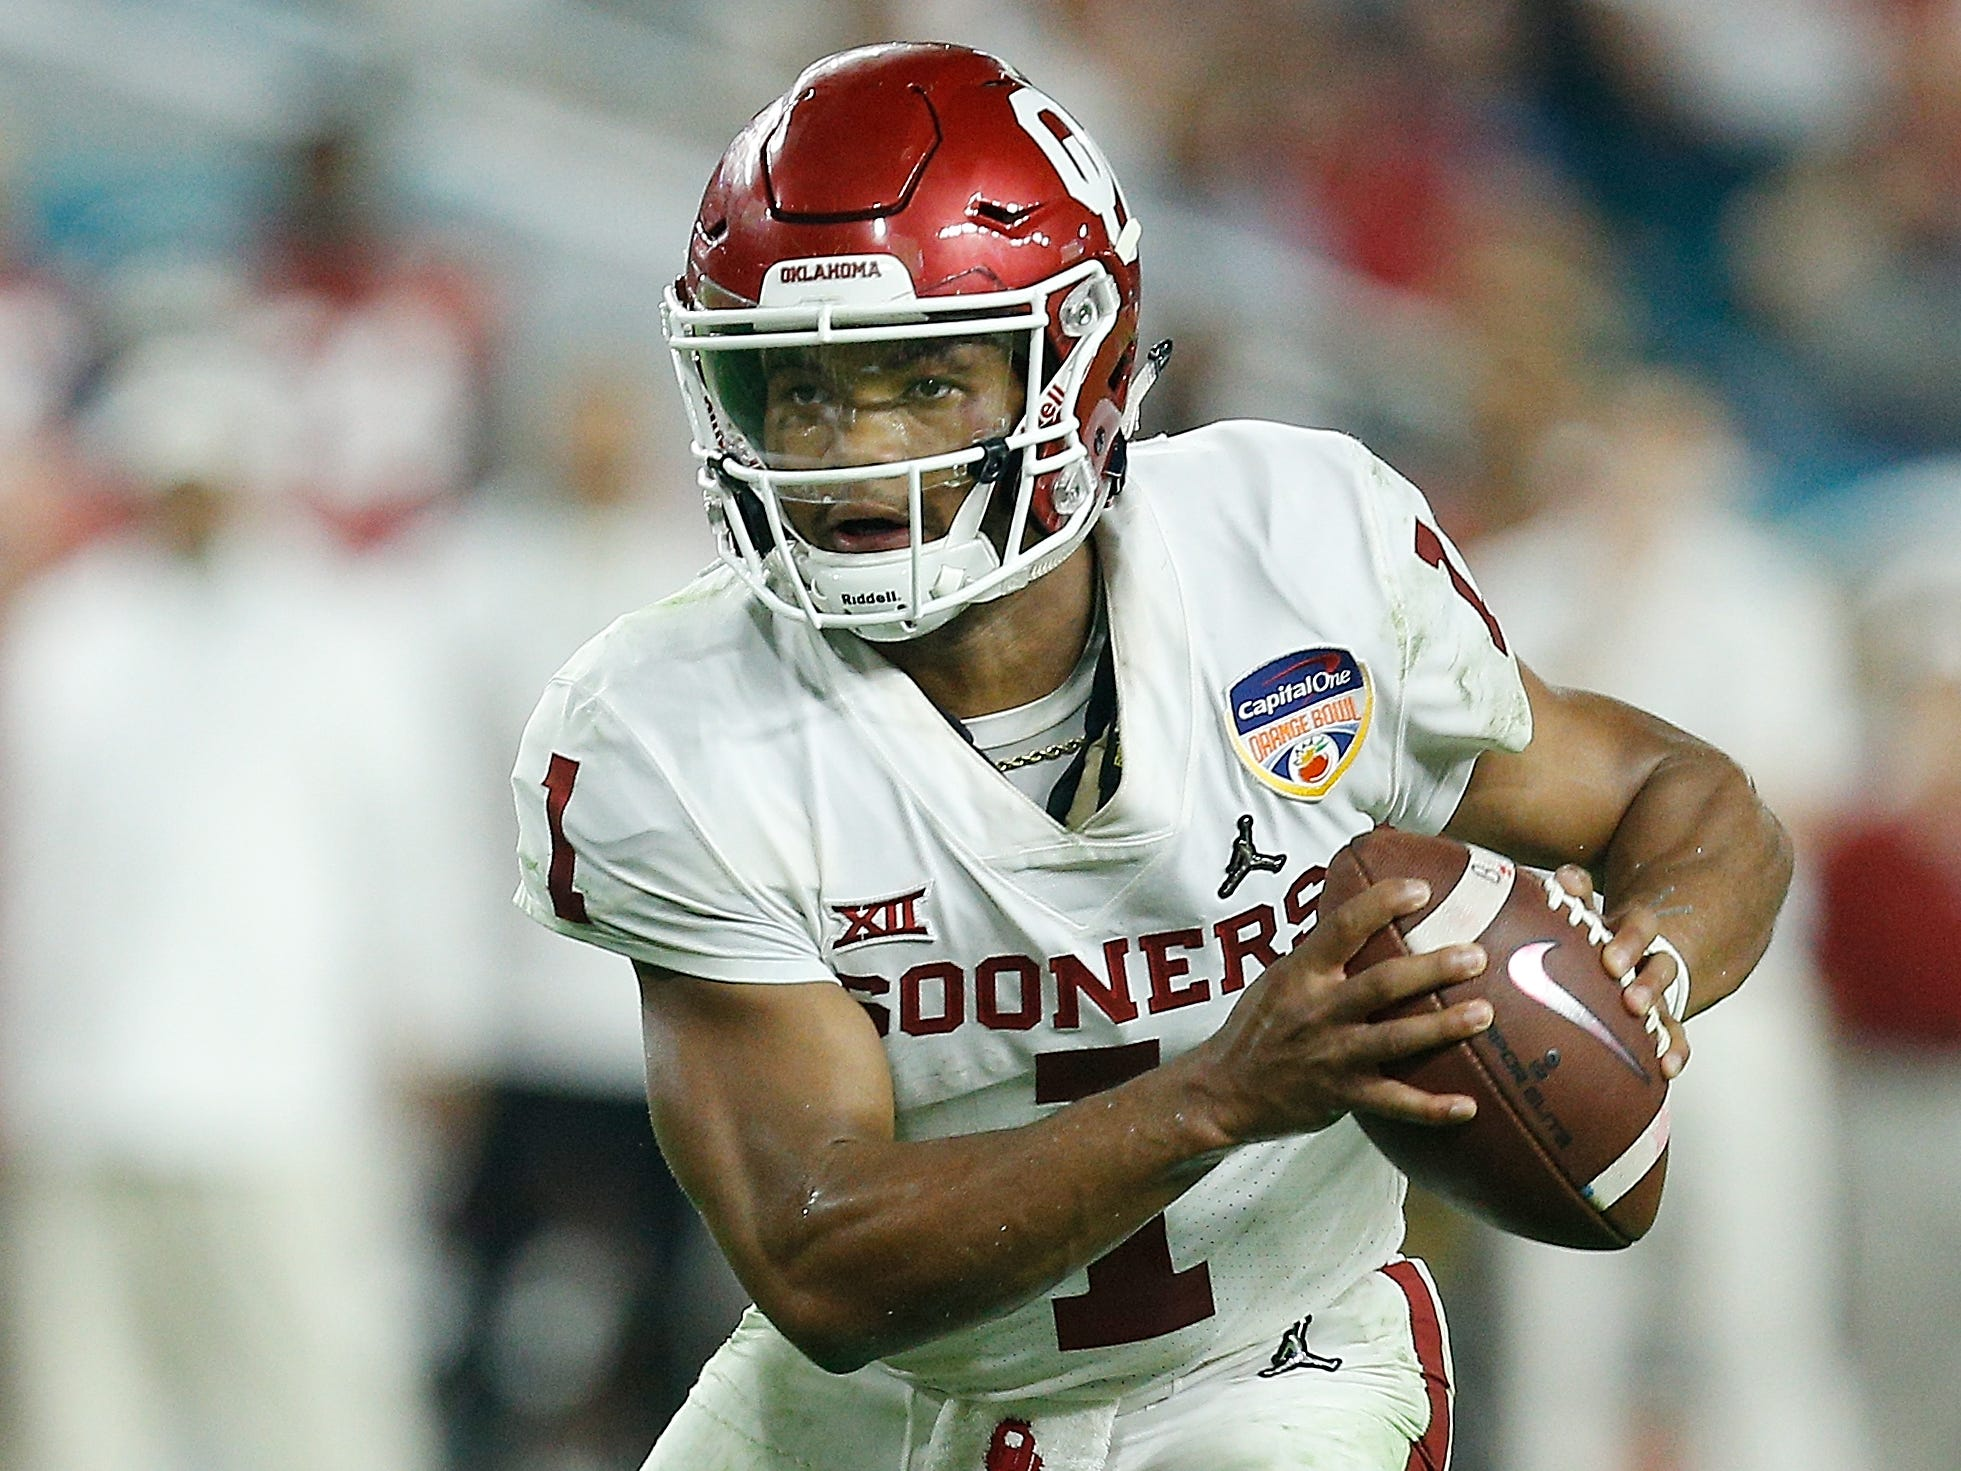 7. Jacksonville Jaguars — Kyler Murray, QB, Oklahoma: We can readily admit Murray will be off the board for several teams because of his split commitment with baseball, and his height is going to bother more potential suitors, but the lure of college football's most exciting player could be a siren song for the Jaguars, who went from Super Bowl contender to the Dumpster counting on Blake Bortles to be the guy.